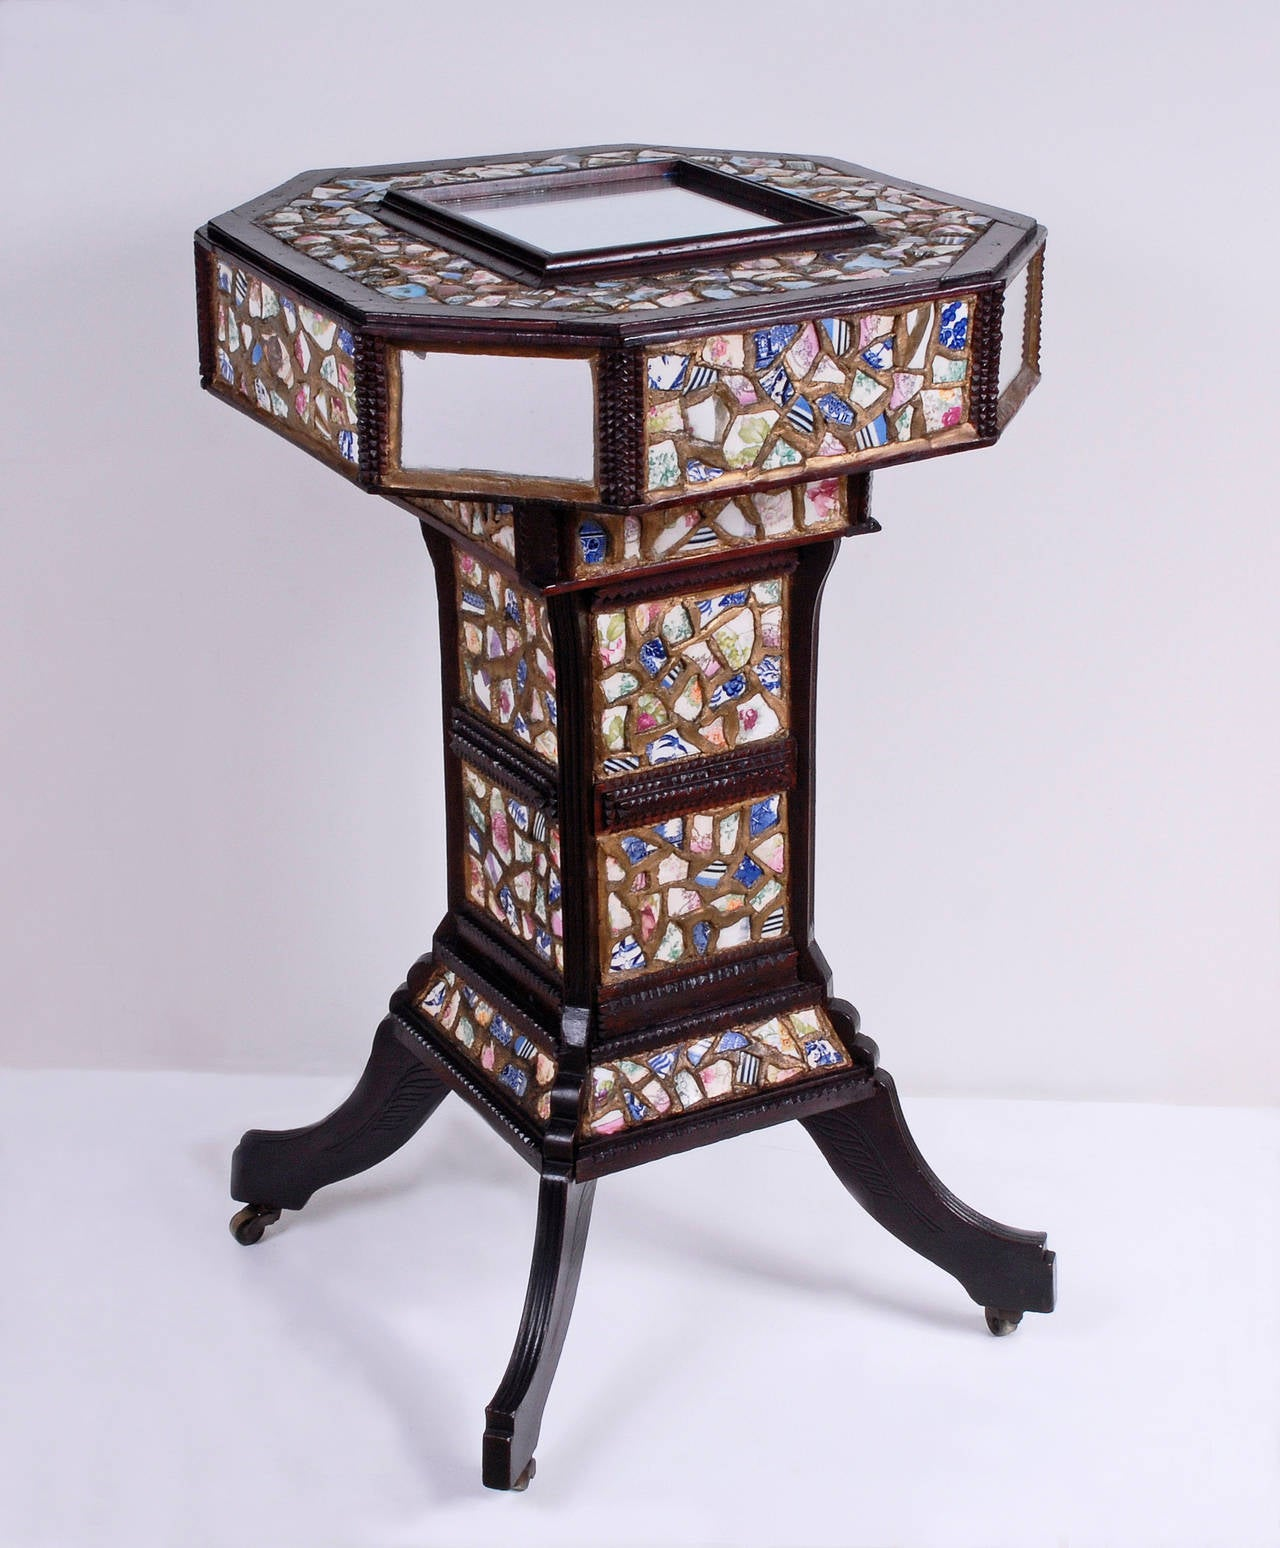 Mosaic Chard Tramp Art Stand With Secret Compartment For Sale At 1stdibs